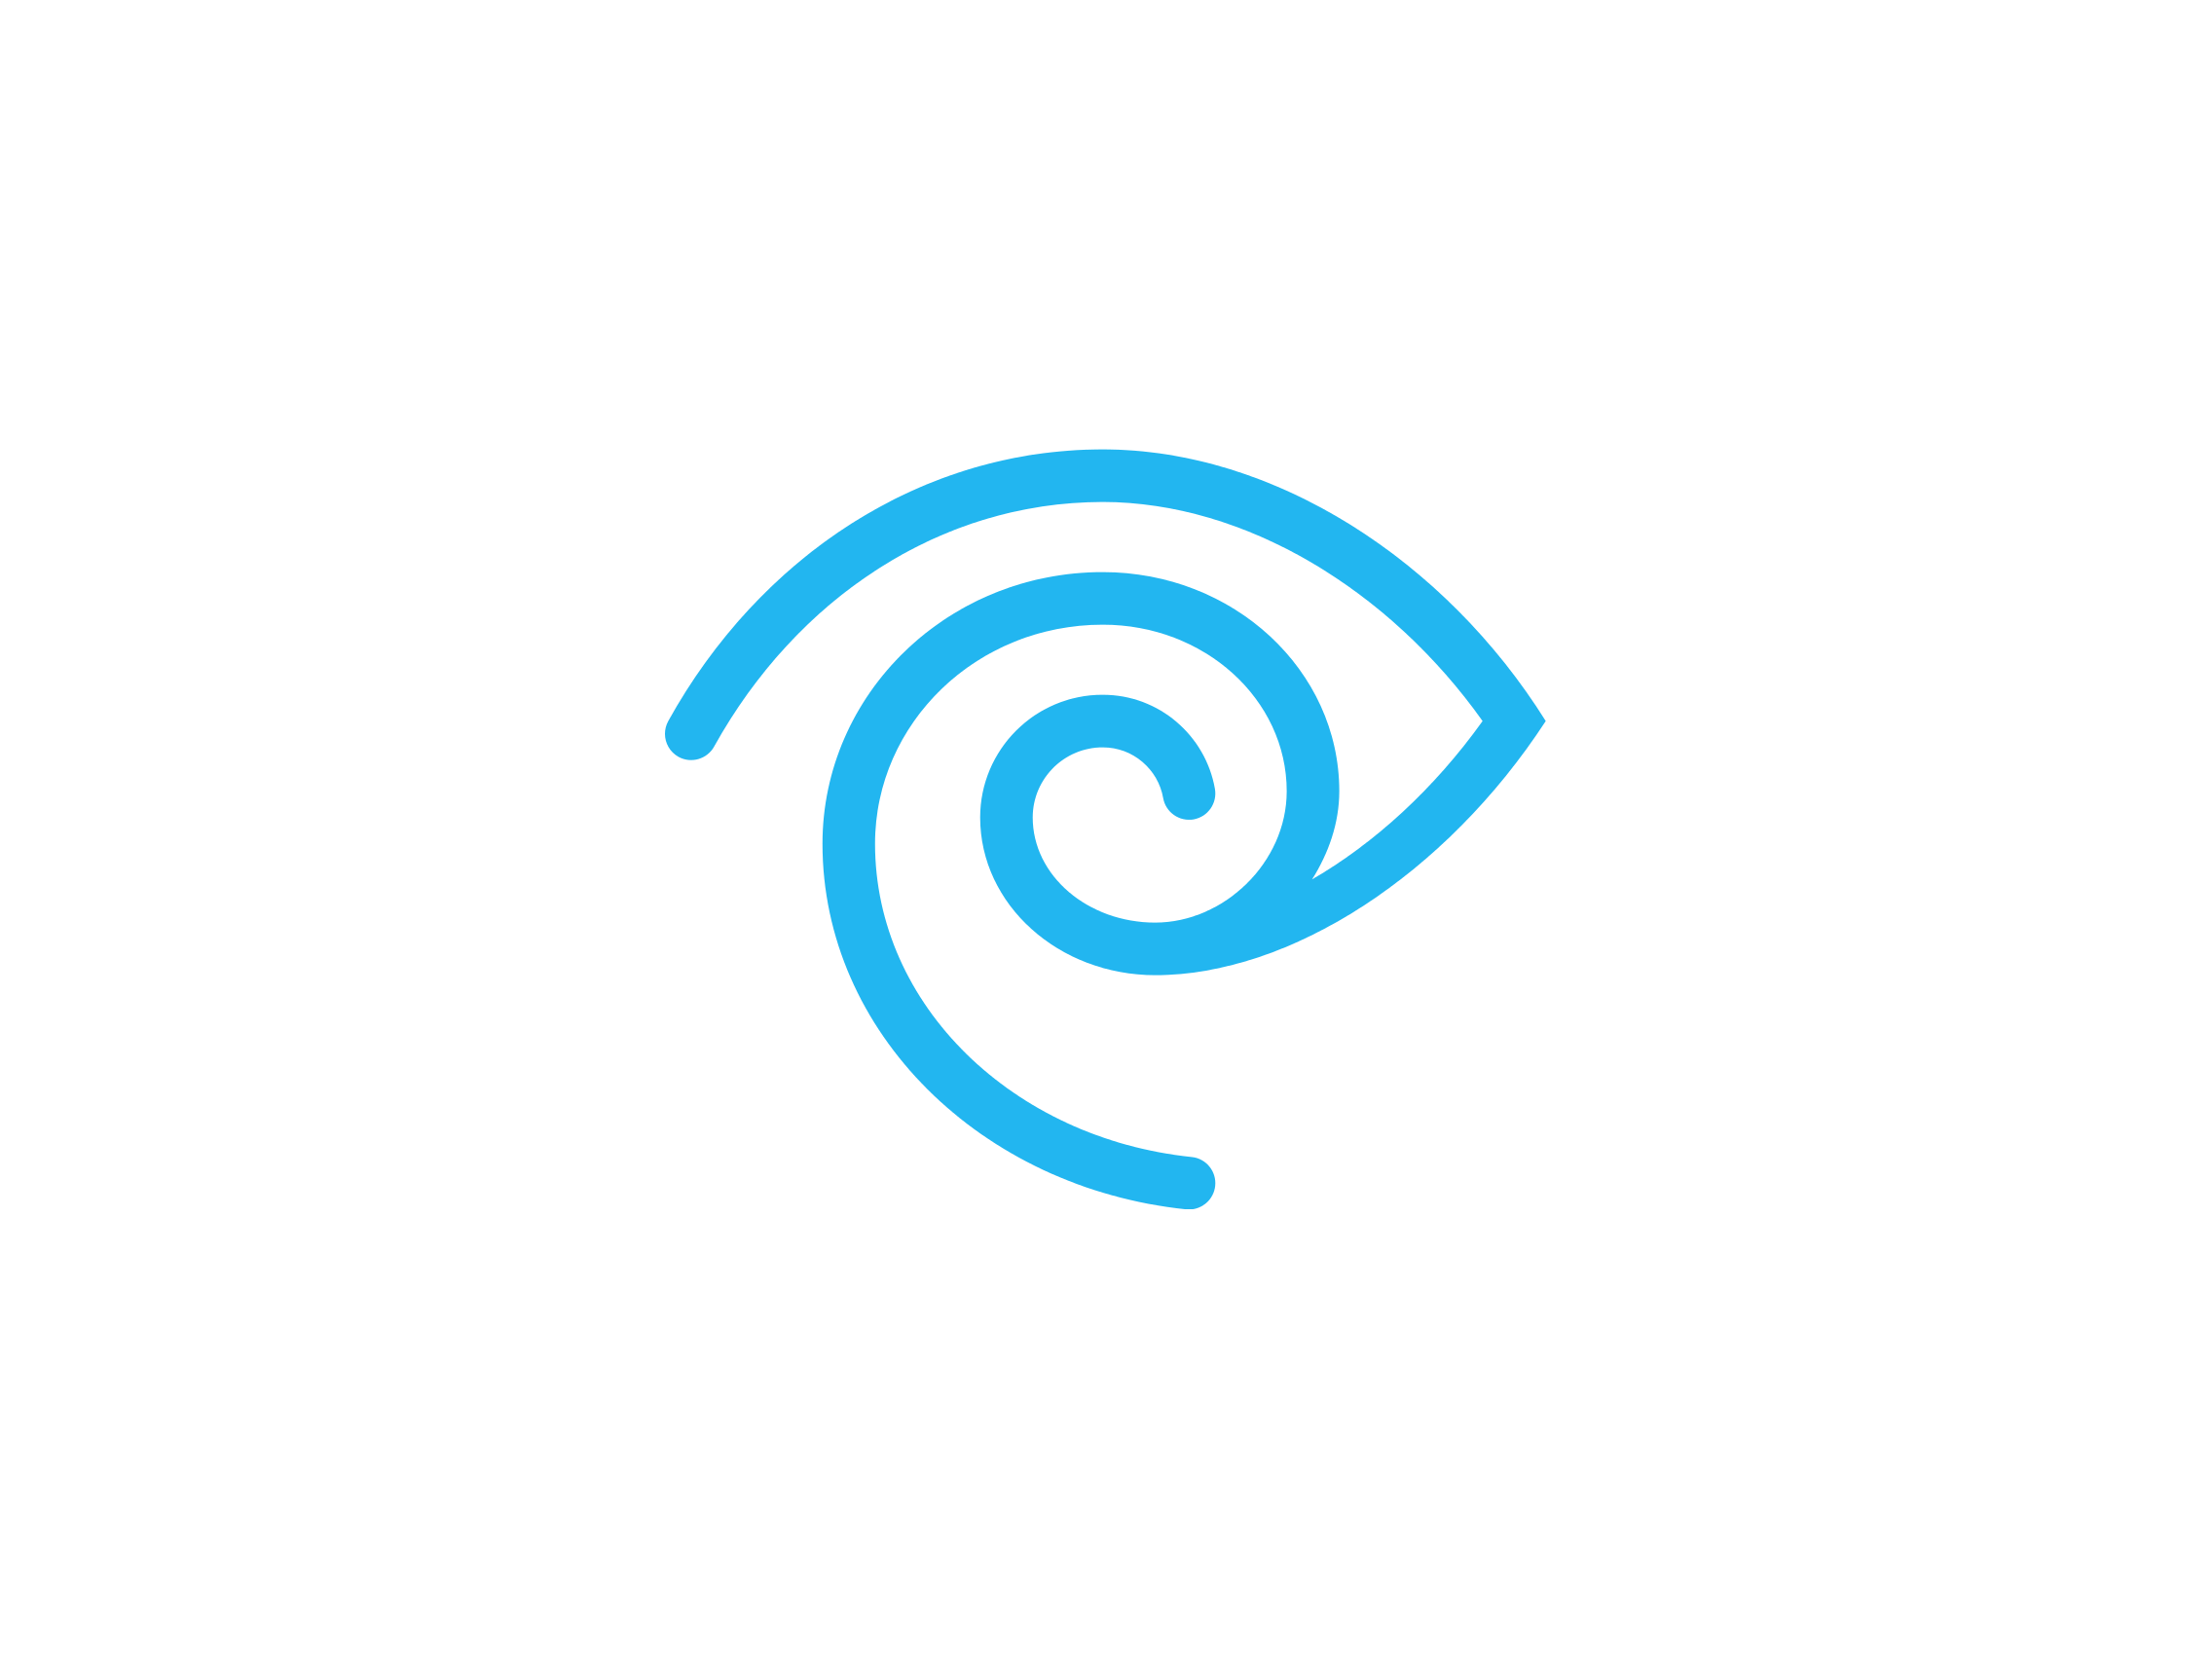 eye logo logok